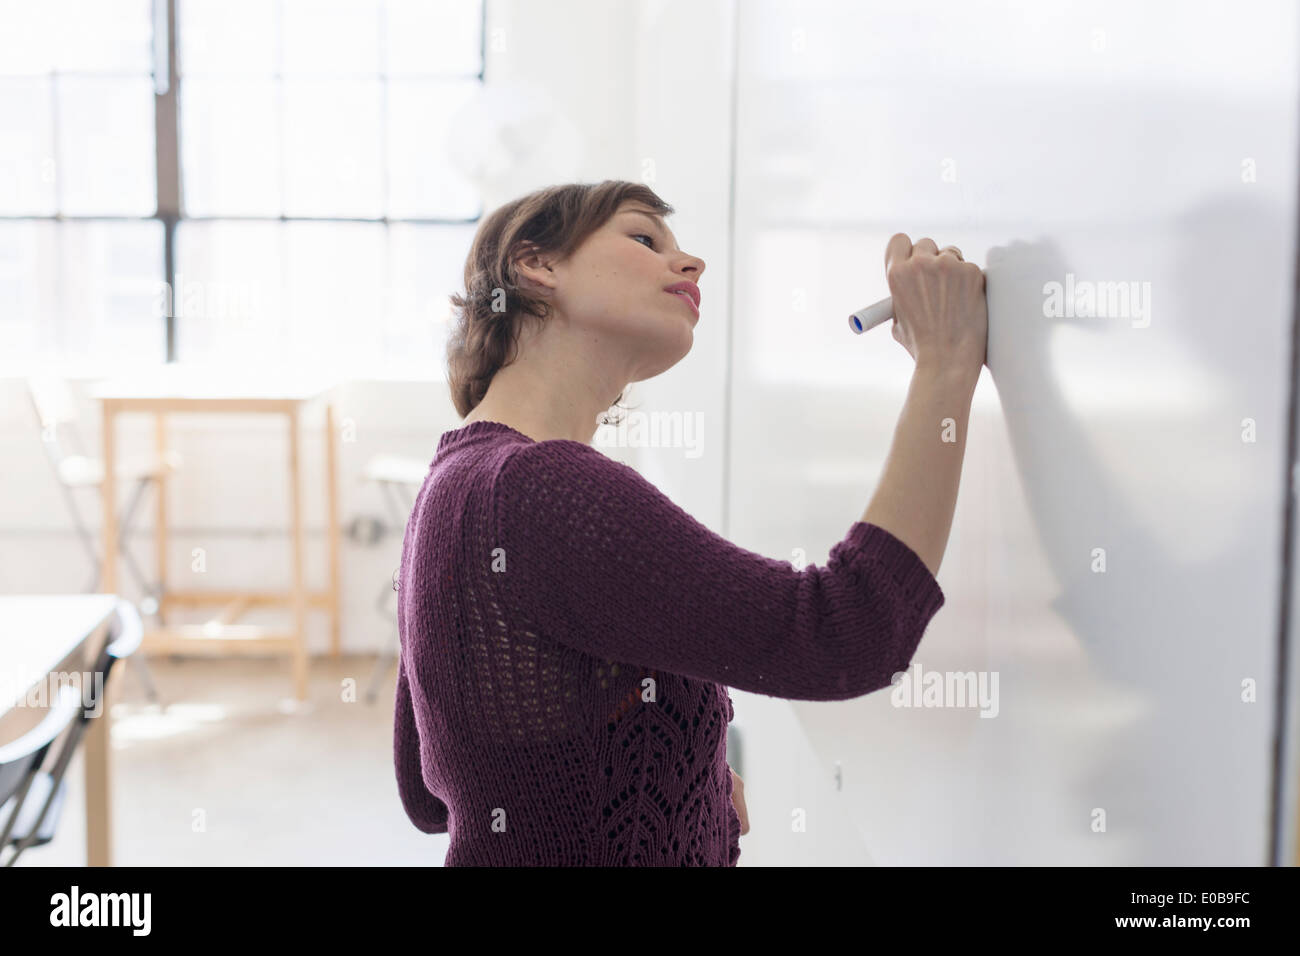 Young female designer drawing on whiteboard - Stock Image